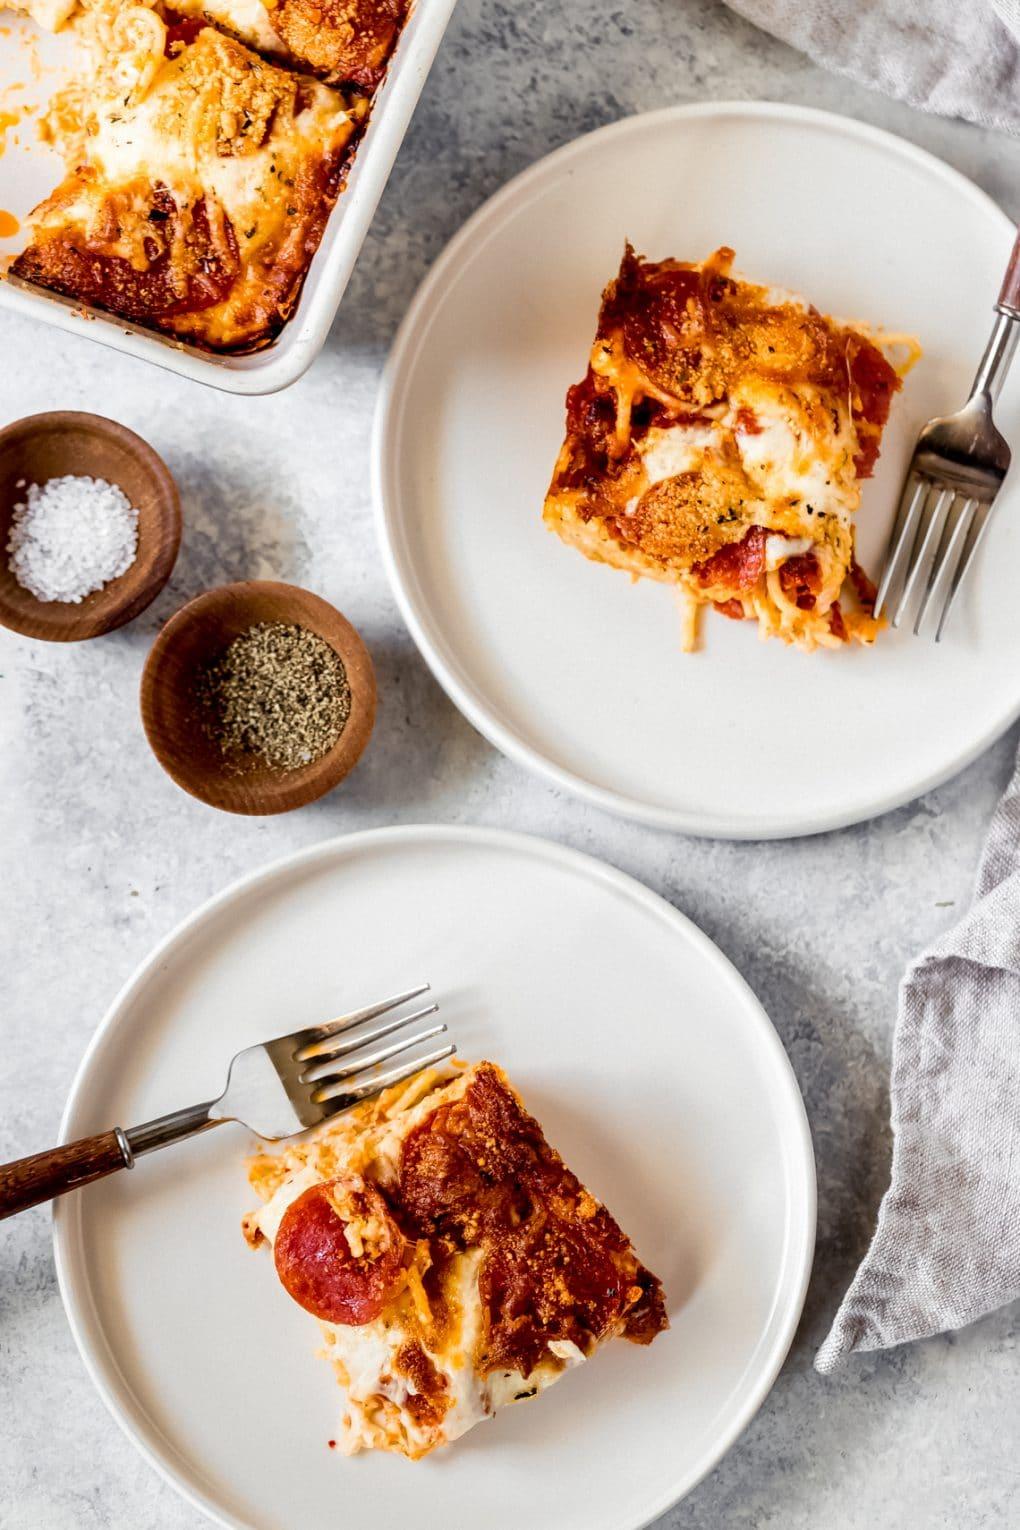 two servings of pizza baked spaghetti on white plates